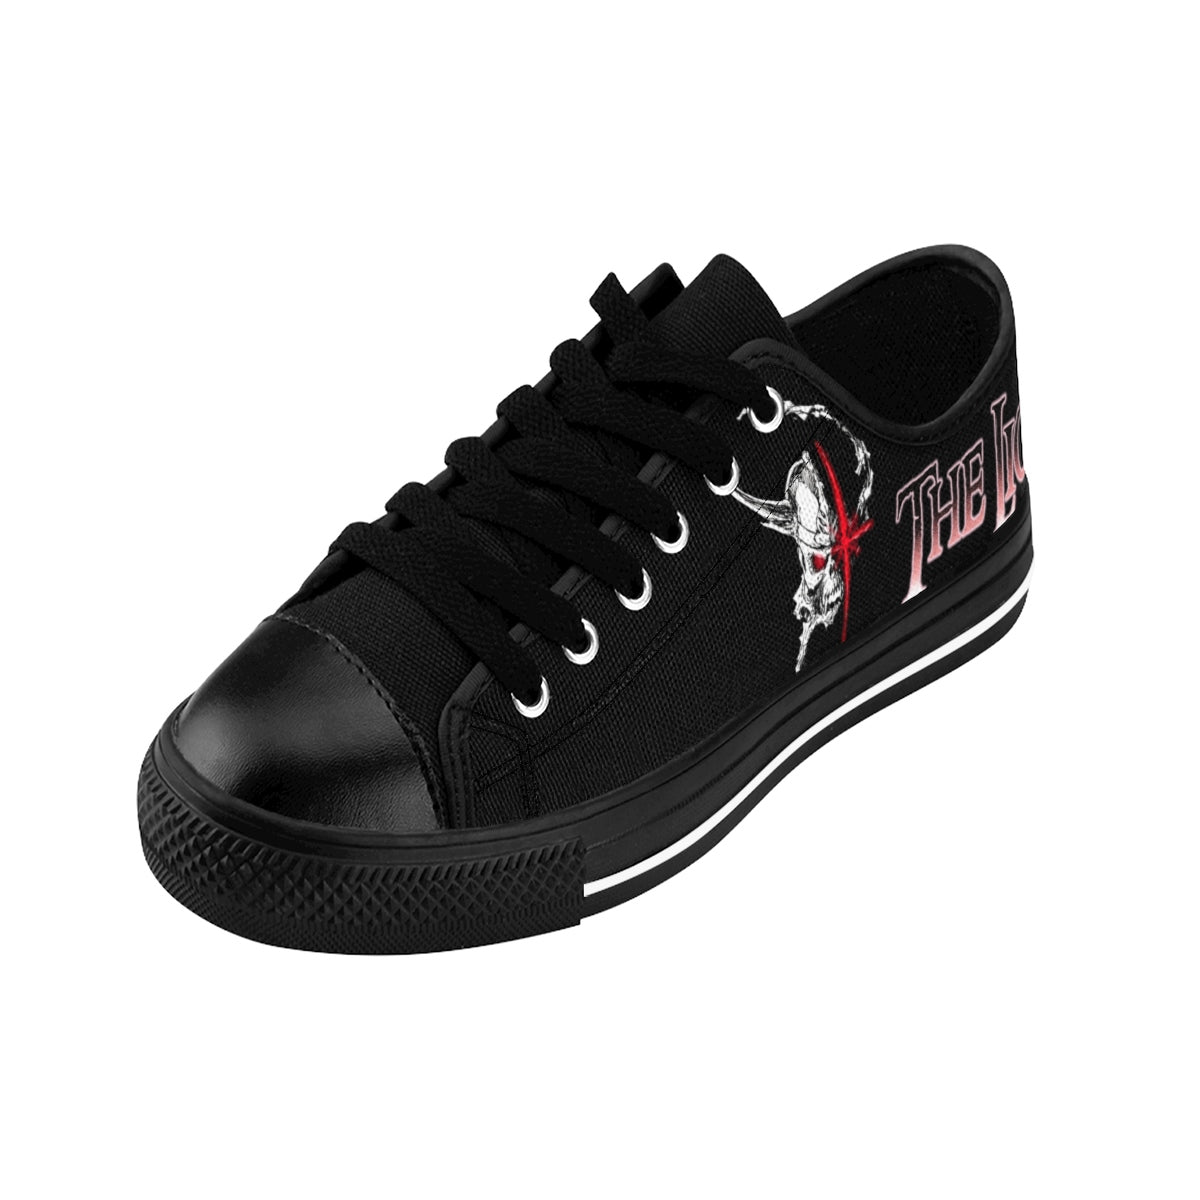 THE LICH Women's Sneaker